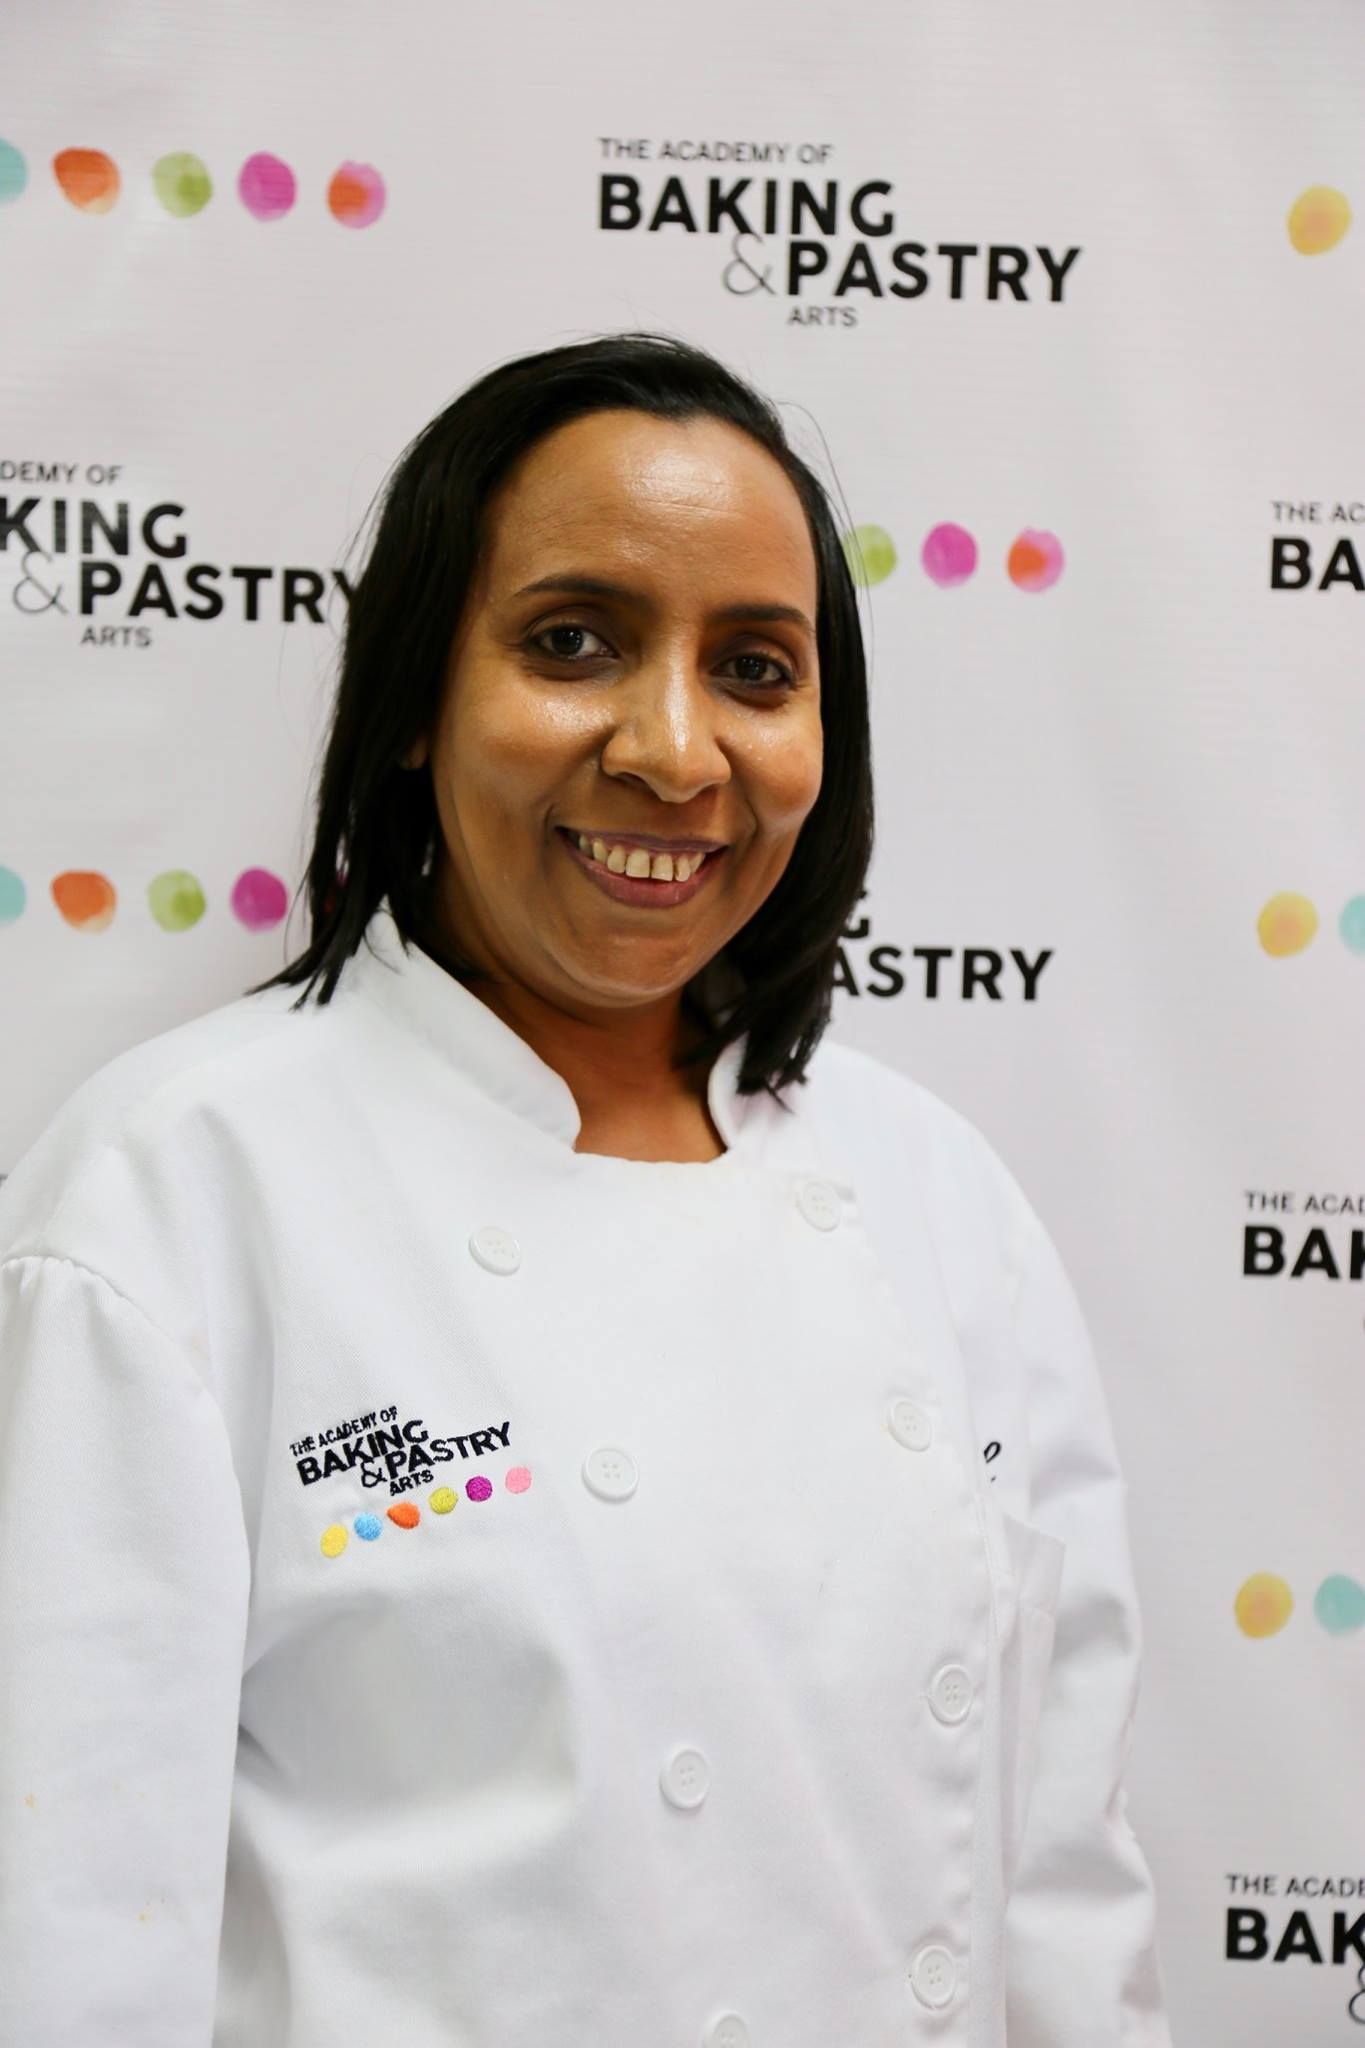 The Academy of Baking & Pastry Arts